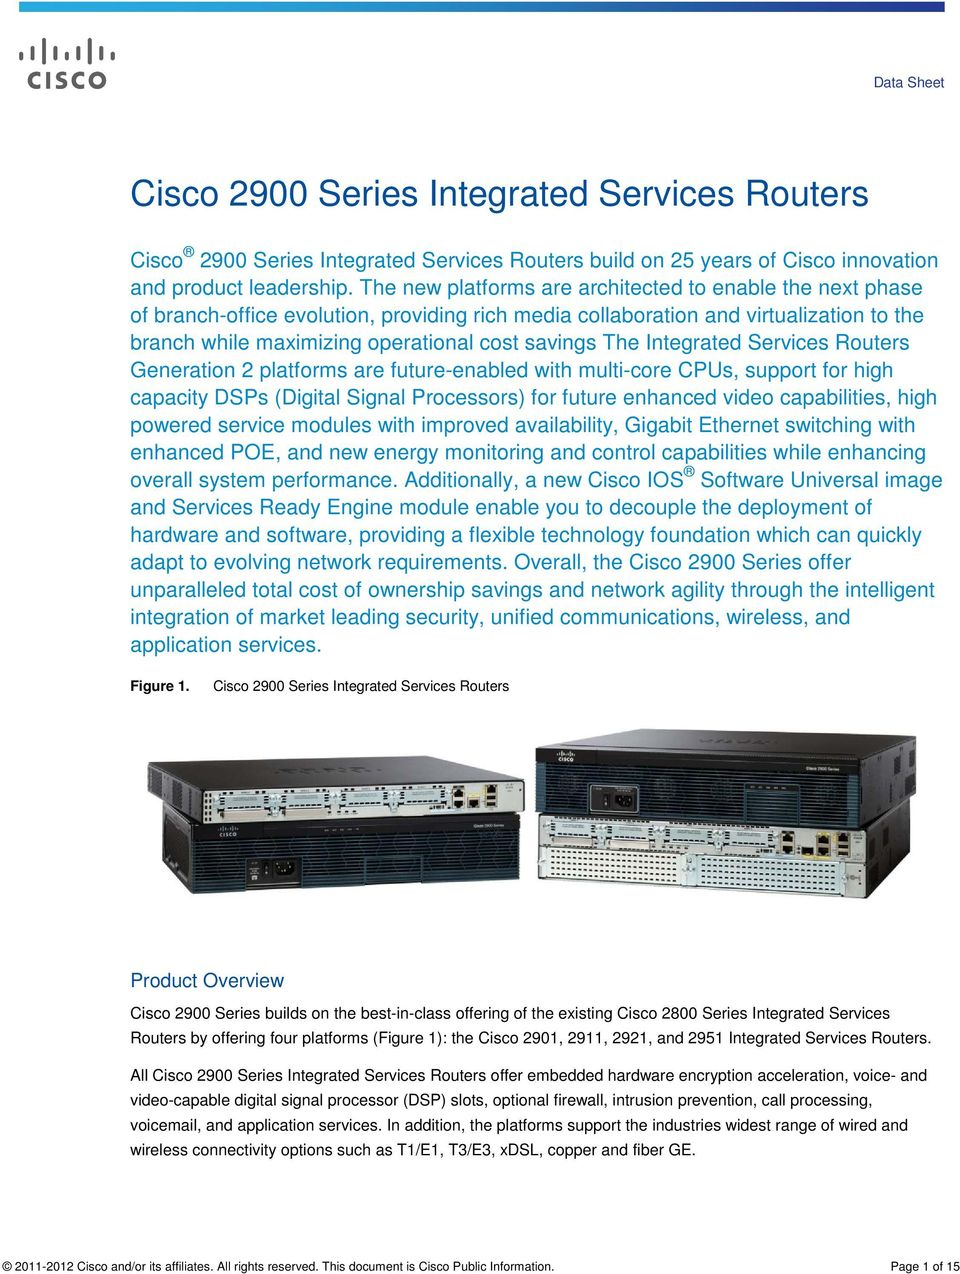 The Integrated Services Routers Generation 2 platforms are future-enabled with multi-core CPUs, support for high capacity DSPs (Digital Signal Processors) for future enhanced video capabilities, high